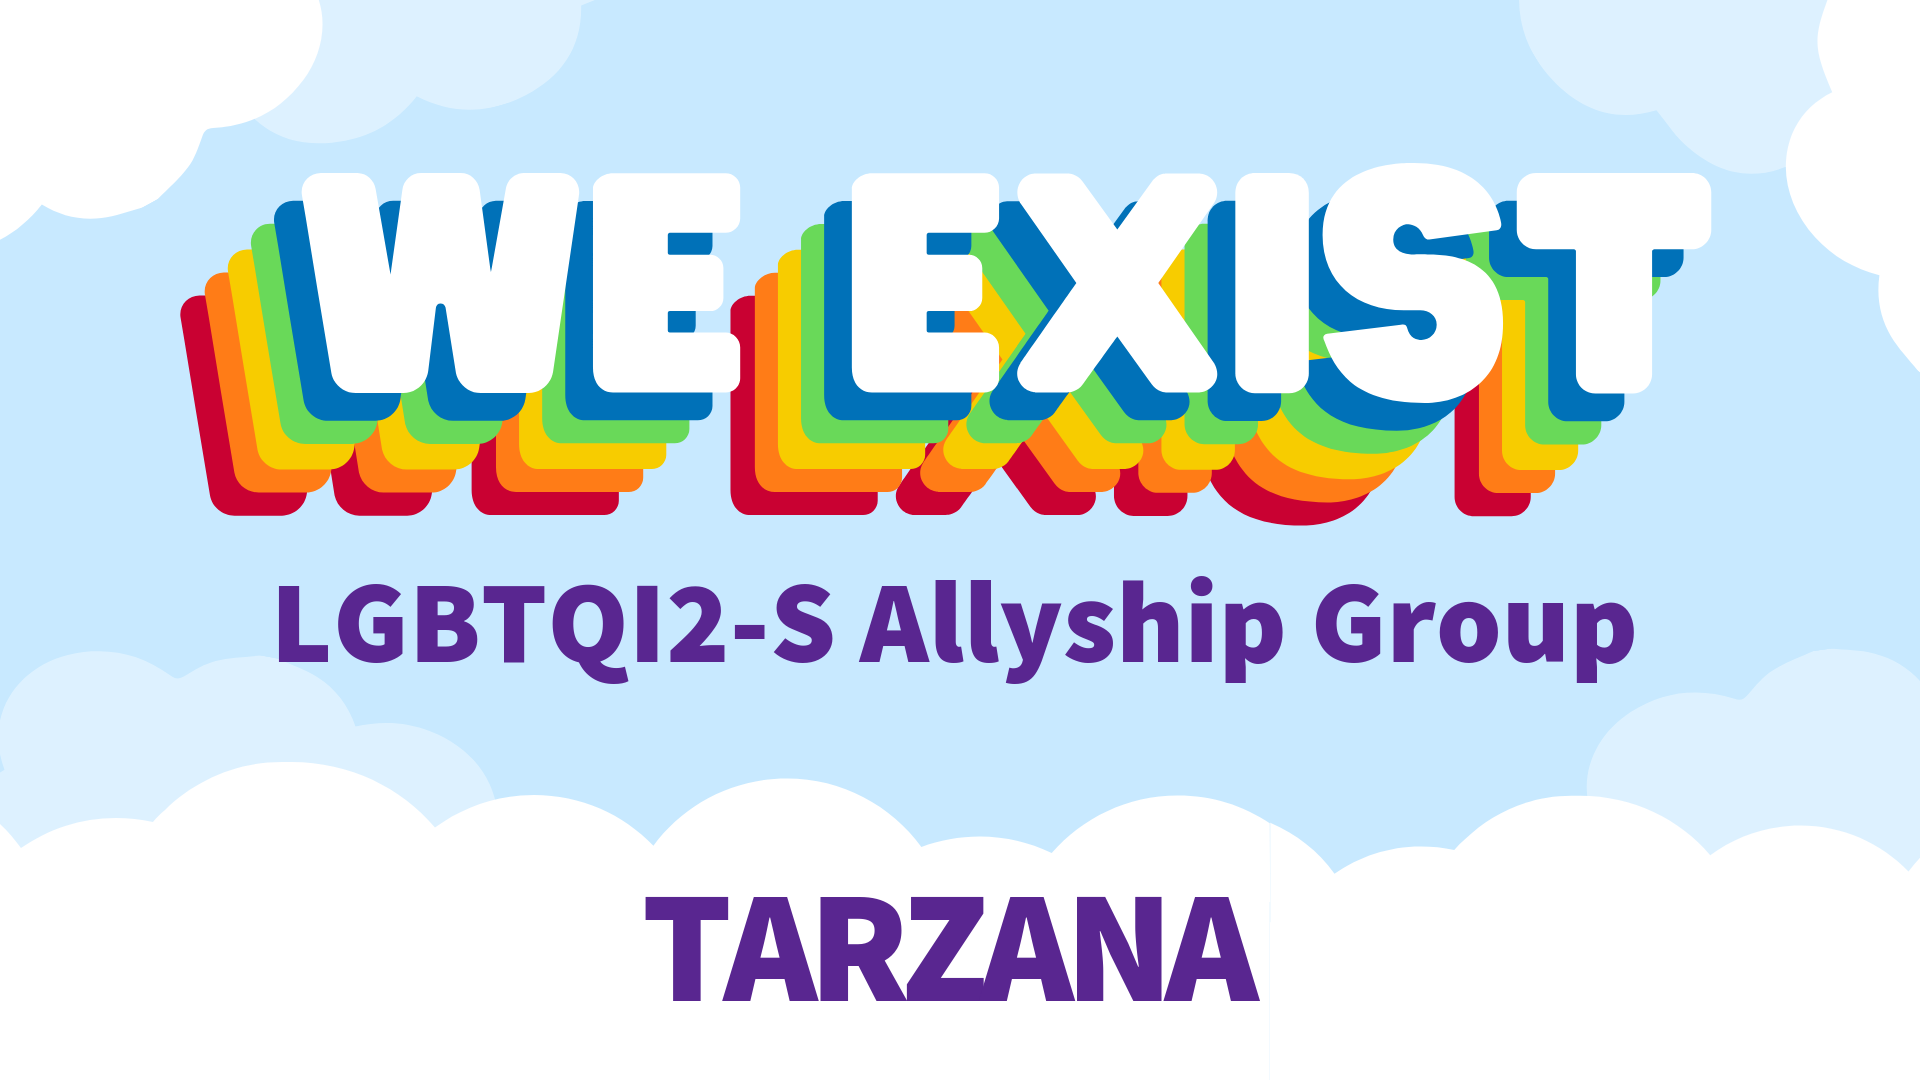 We Exist LGBTQ Allyship Group (SFV)